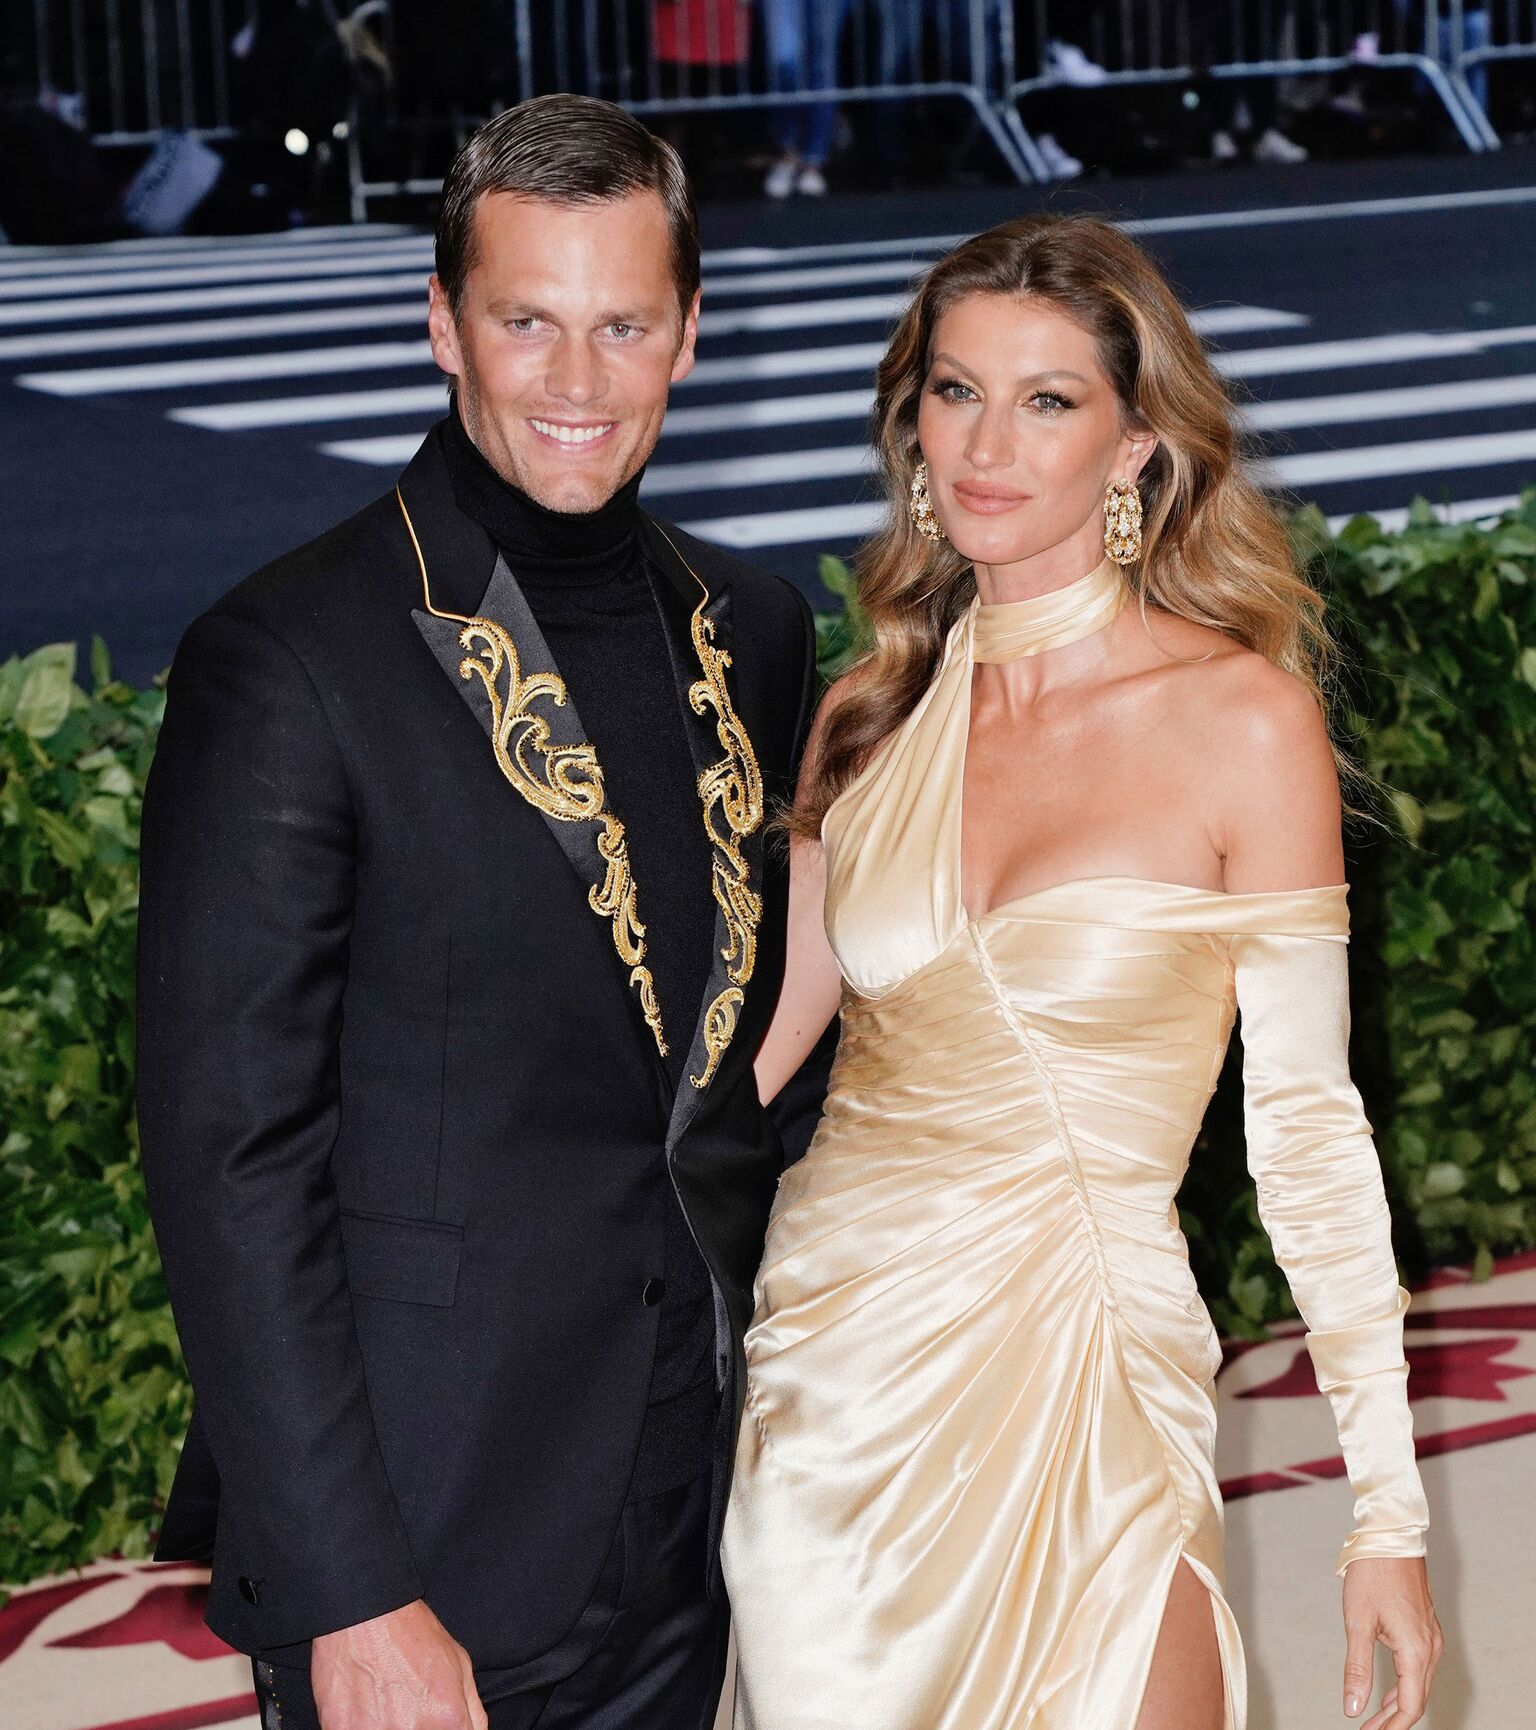 Gisele Bundchen and Tom Brady attend the Heavenly Bodies: Fashion & The Catholic Imagination Costume Institute Gala  | Getty Images